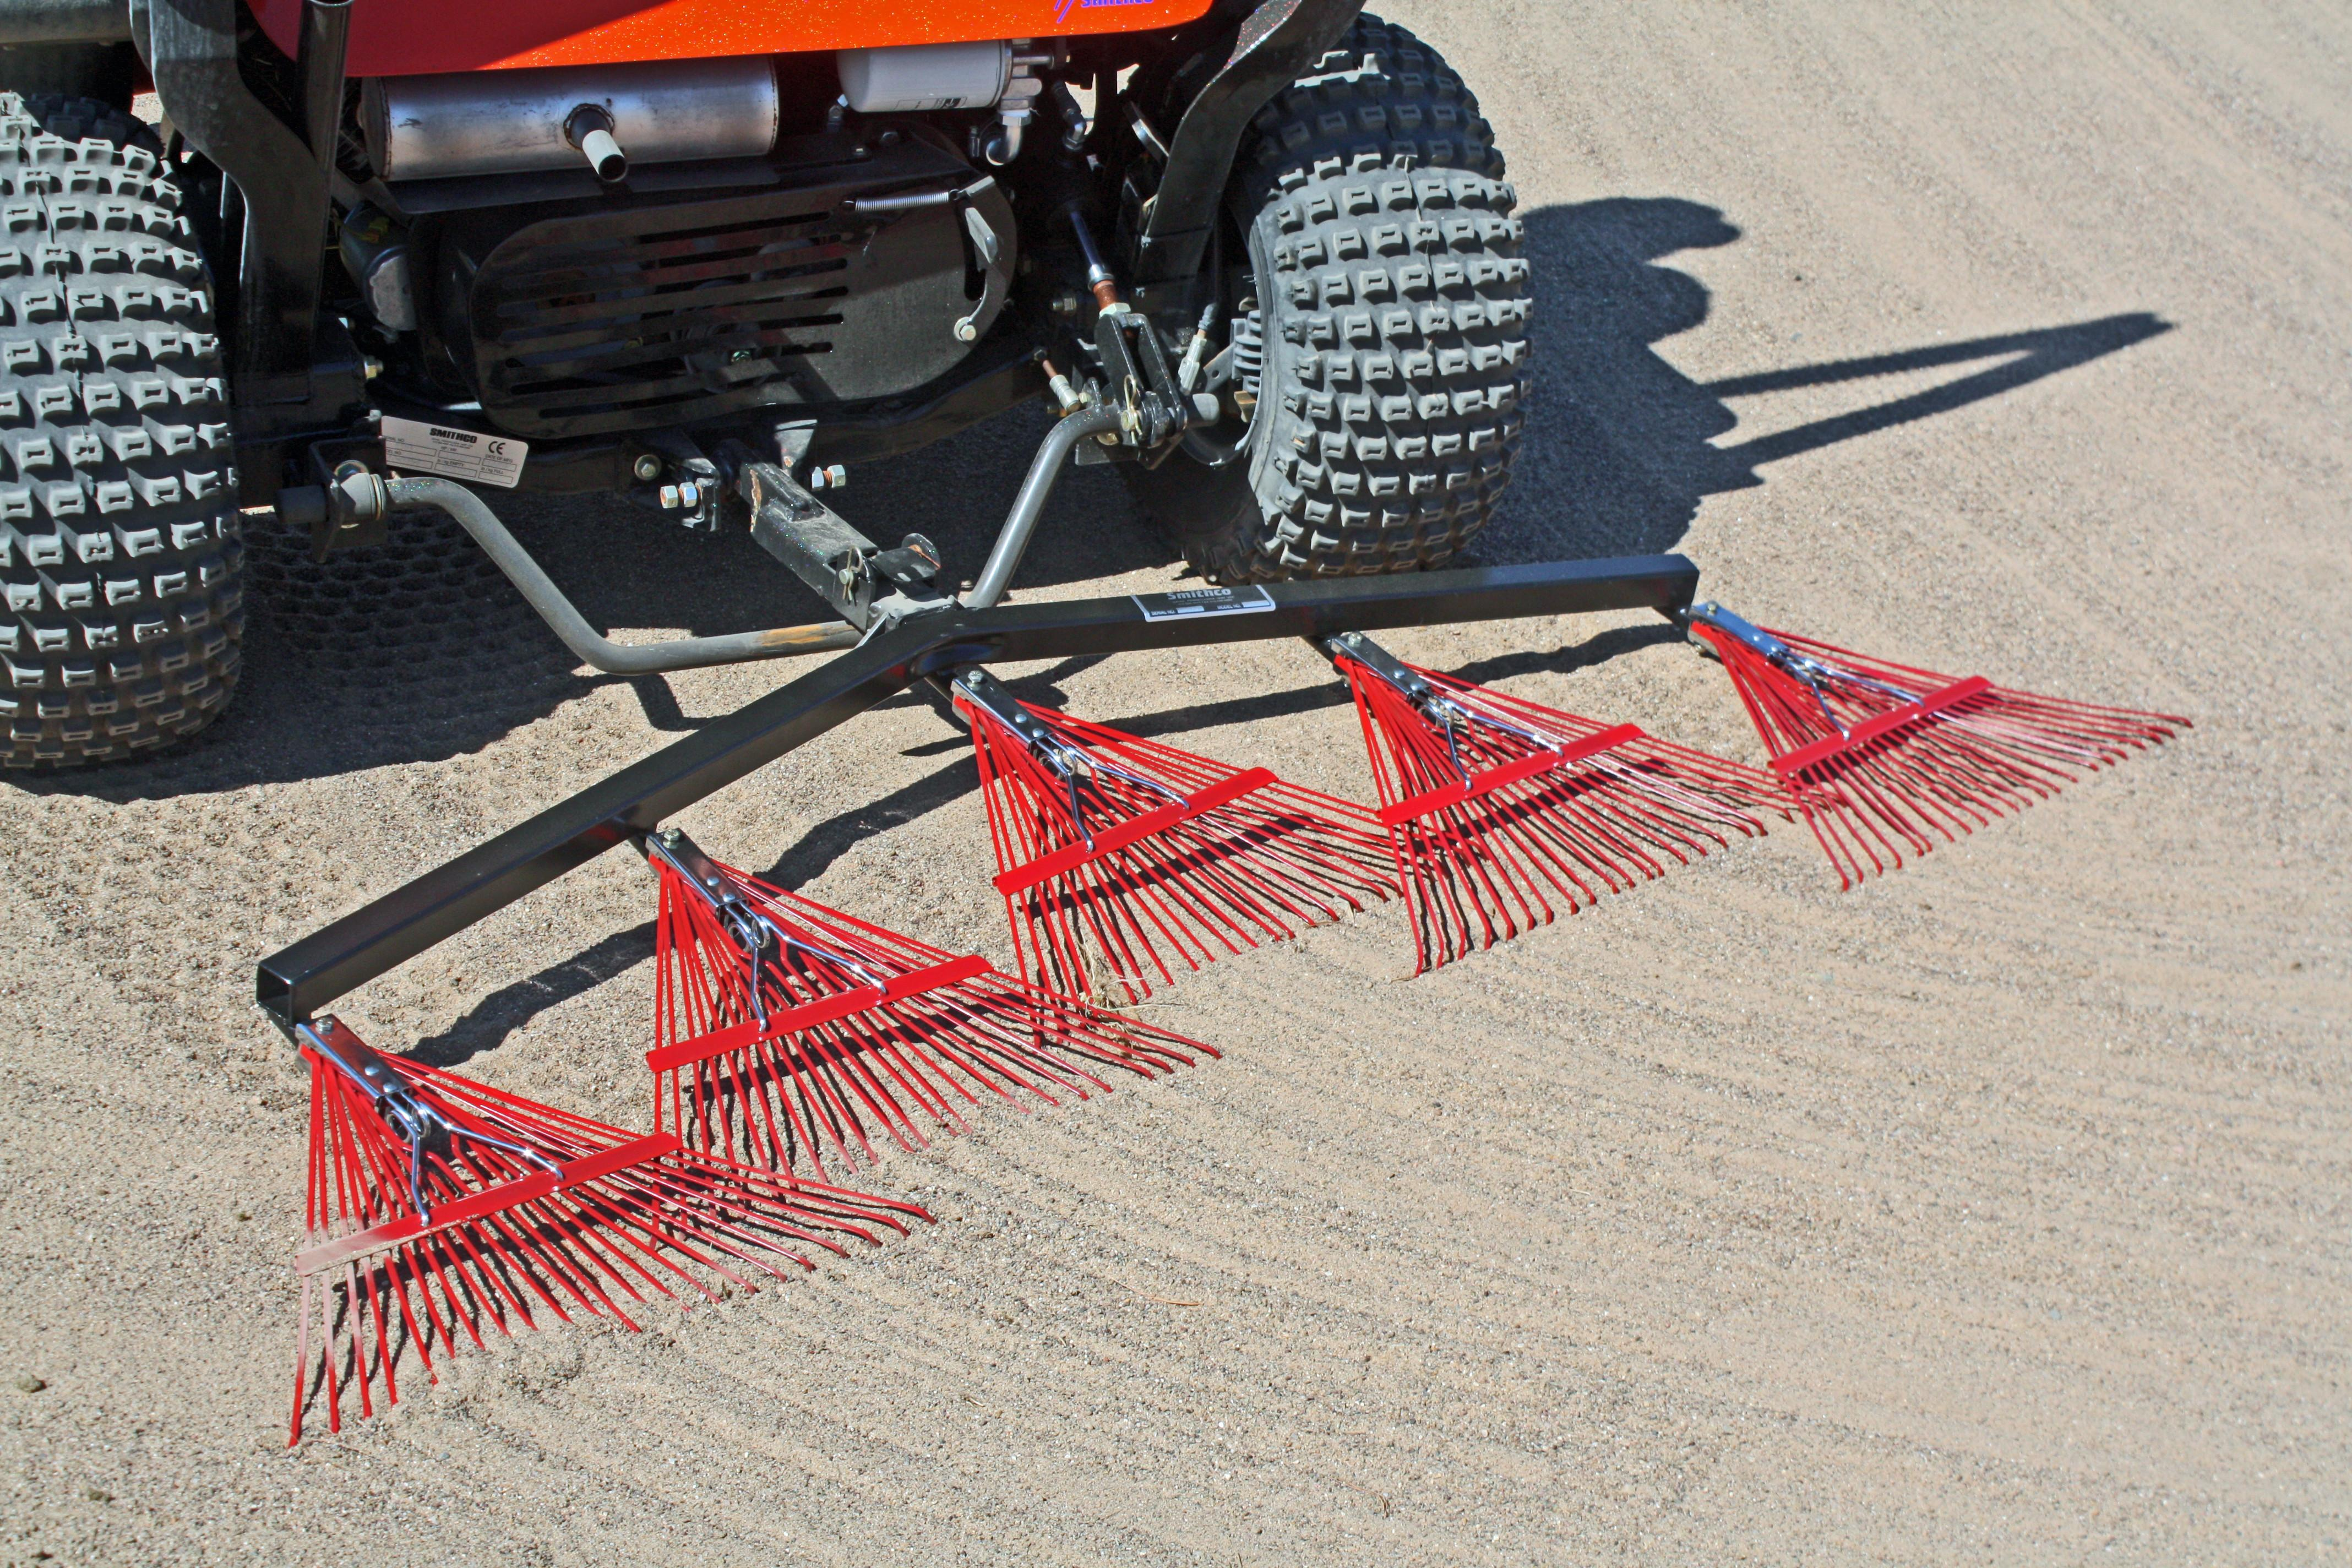 Smithco Bunker Rake Implements Quick Hitch Golf